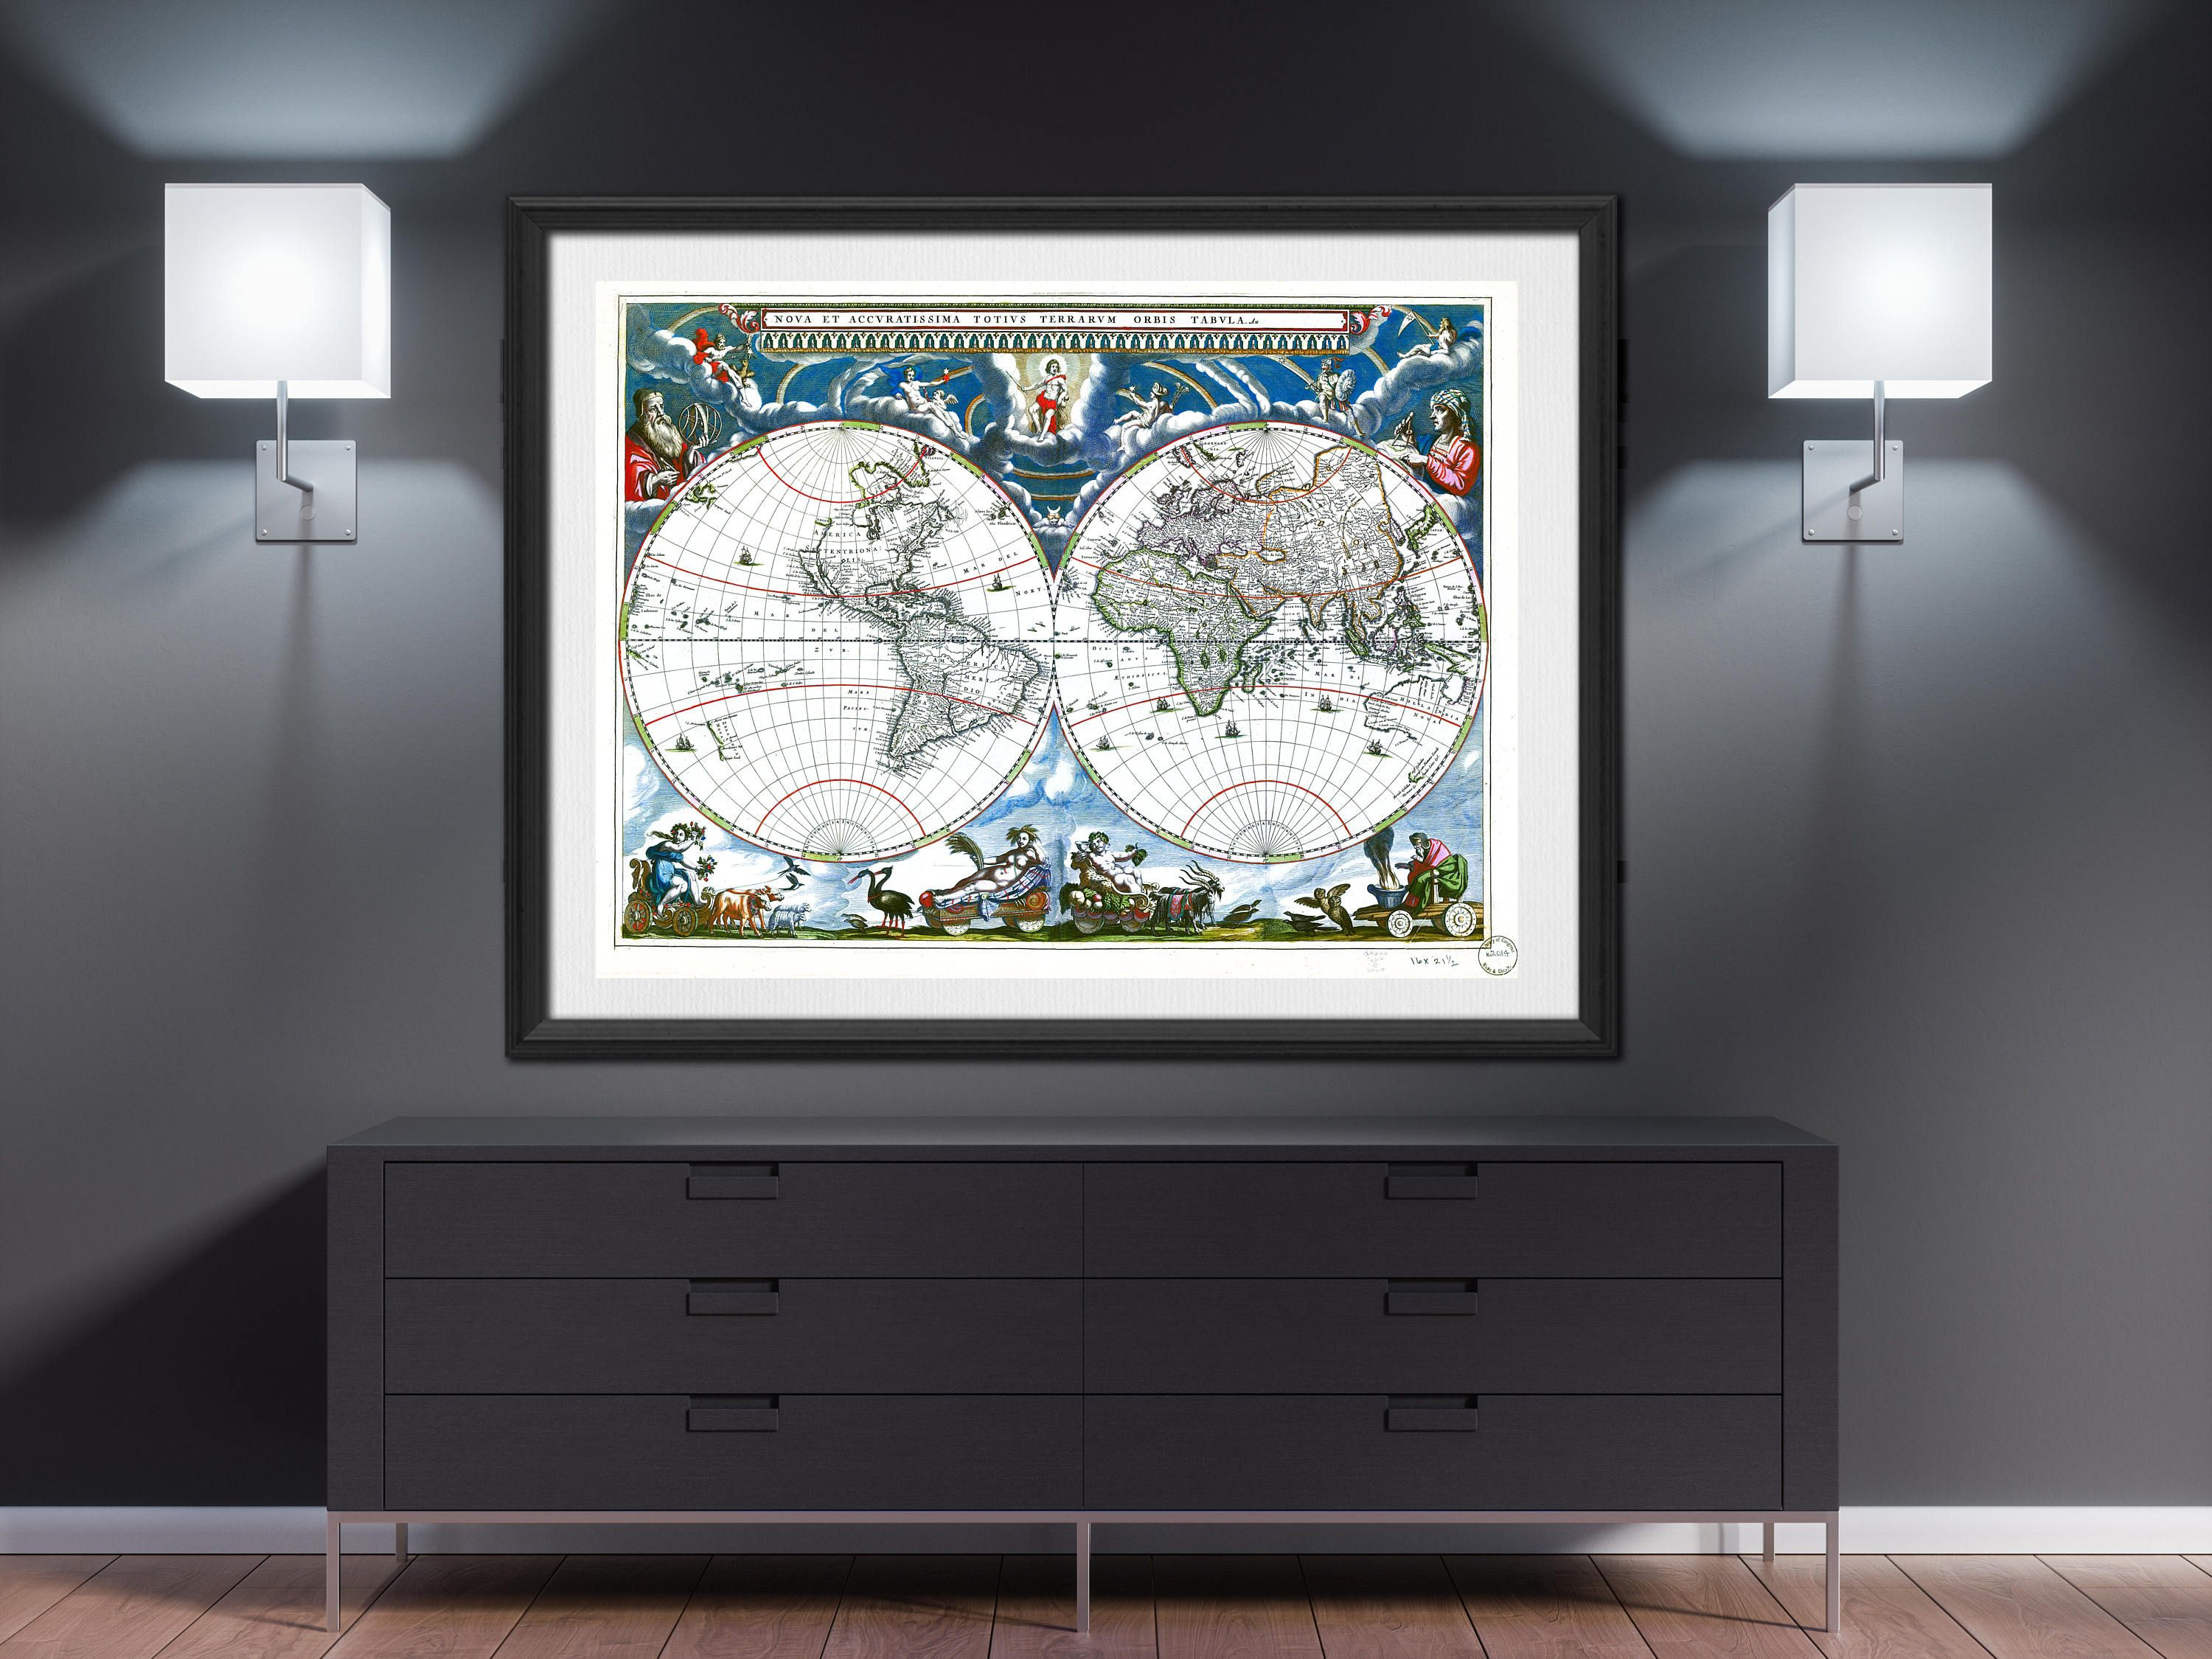 World map print 1760 world map poster world map wall art large world world map print 1760 world map poster world map wall art large world map vintage world map world map room decor push pin worldmap mappemonde gumiabroncs Images